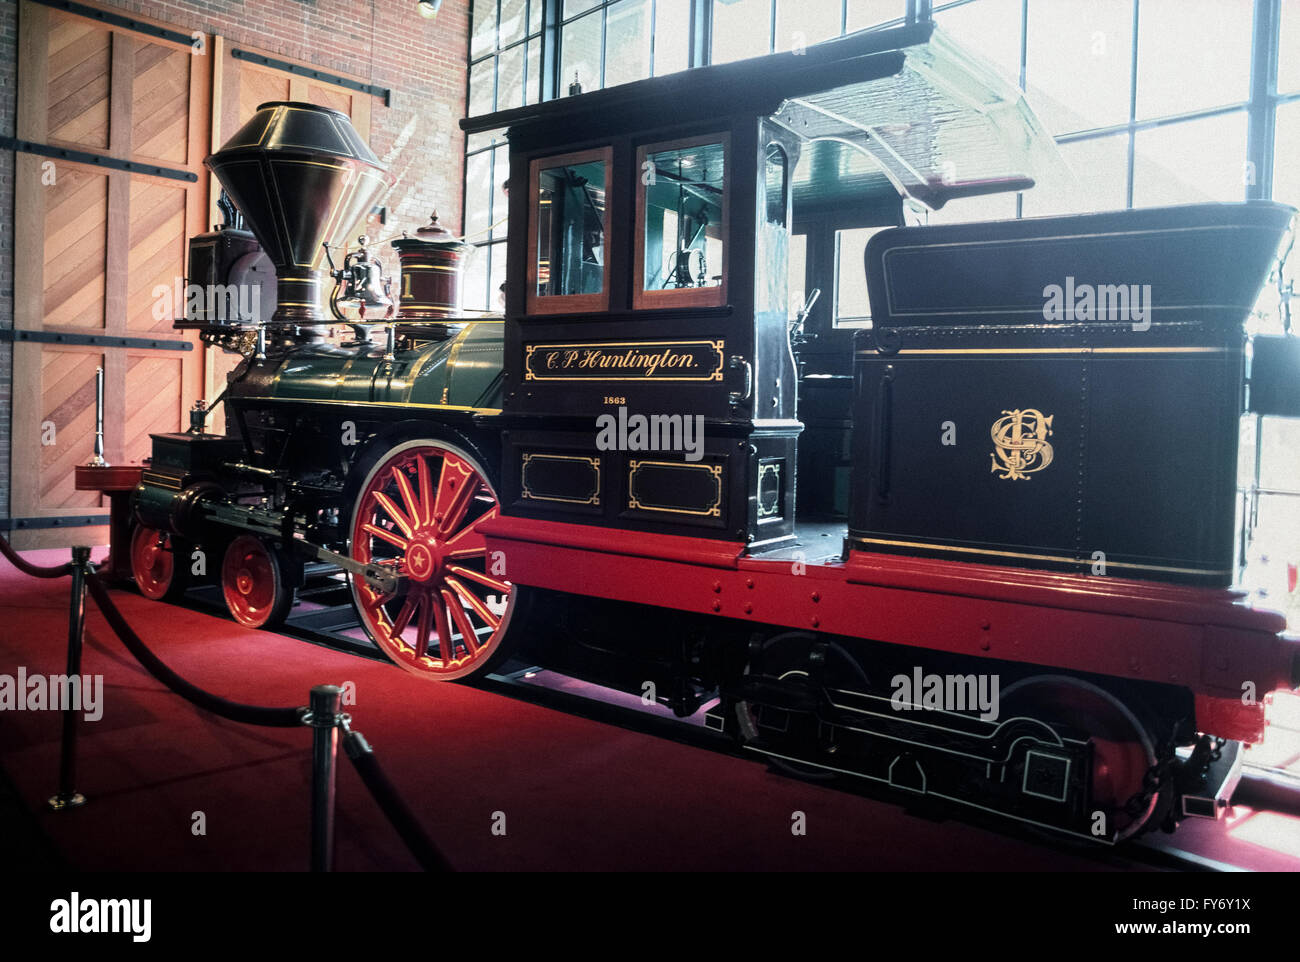 A very small 1863 steam locomotive named the C.P. Huntington for an early American railroad magnate is displayed - Stock Image